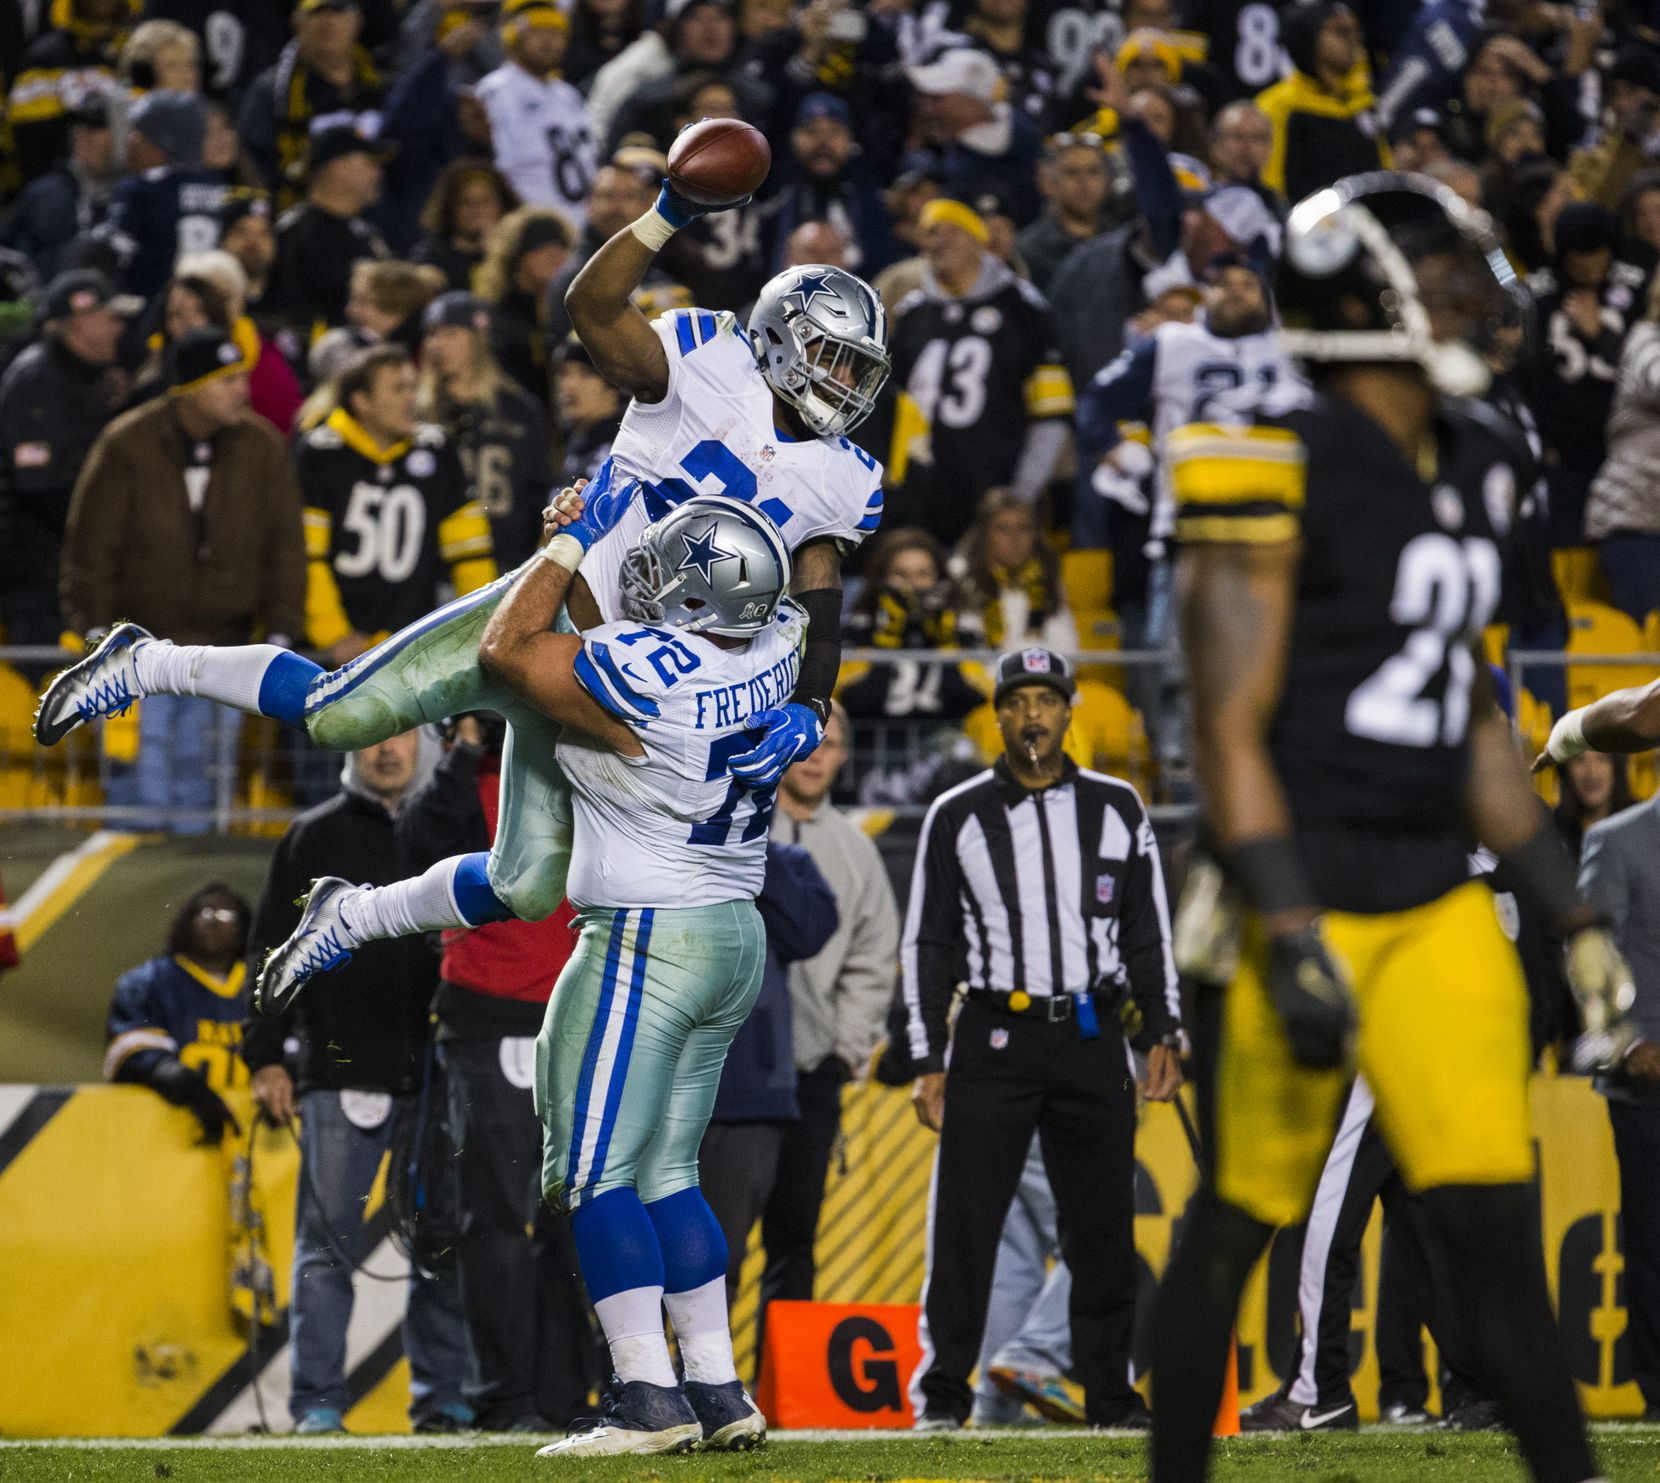 Dallas Cowboys running back Ezekiel Elliott (21) celebrates with center Travis Frederick (72) after running the ball to the end zone for the game winning touchdown during the fourth quarter of their game against the Pittsburgh Steelers on Sunday, November 13, 2016 at Heinz Field in Pittsburgh, Pennsylvania. Pittsburgh Steelers strong safety Robert Golden (21) is at right. The Cowboys won 35-30.